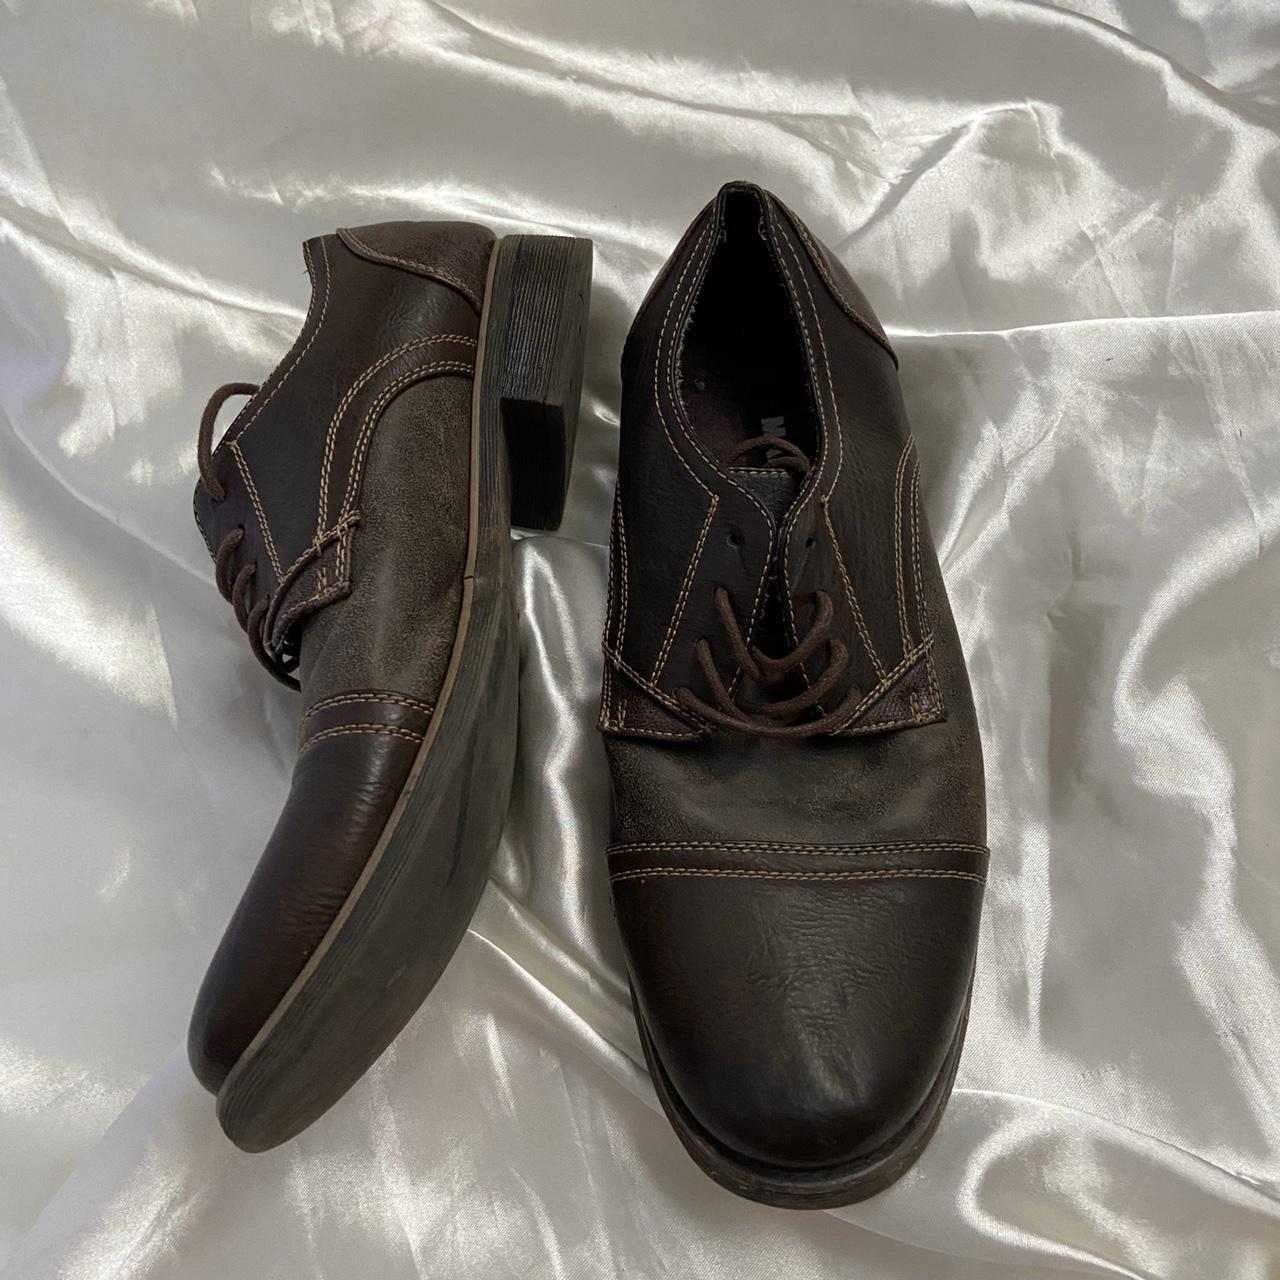 Product Image 1 - Men's casual dress shoes /